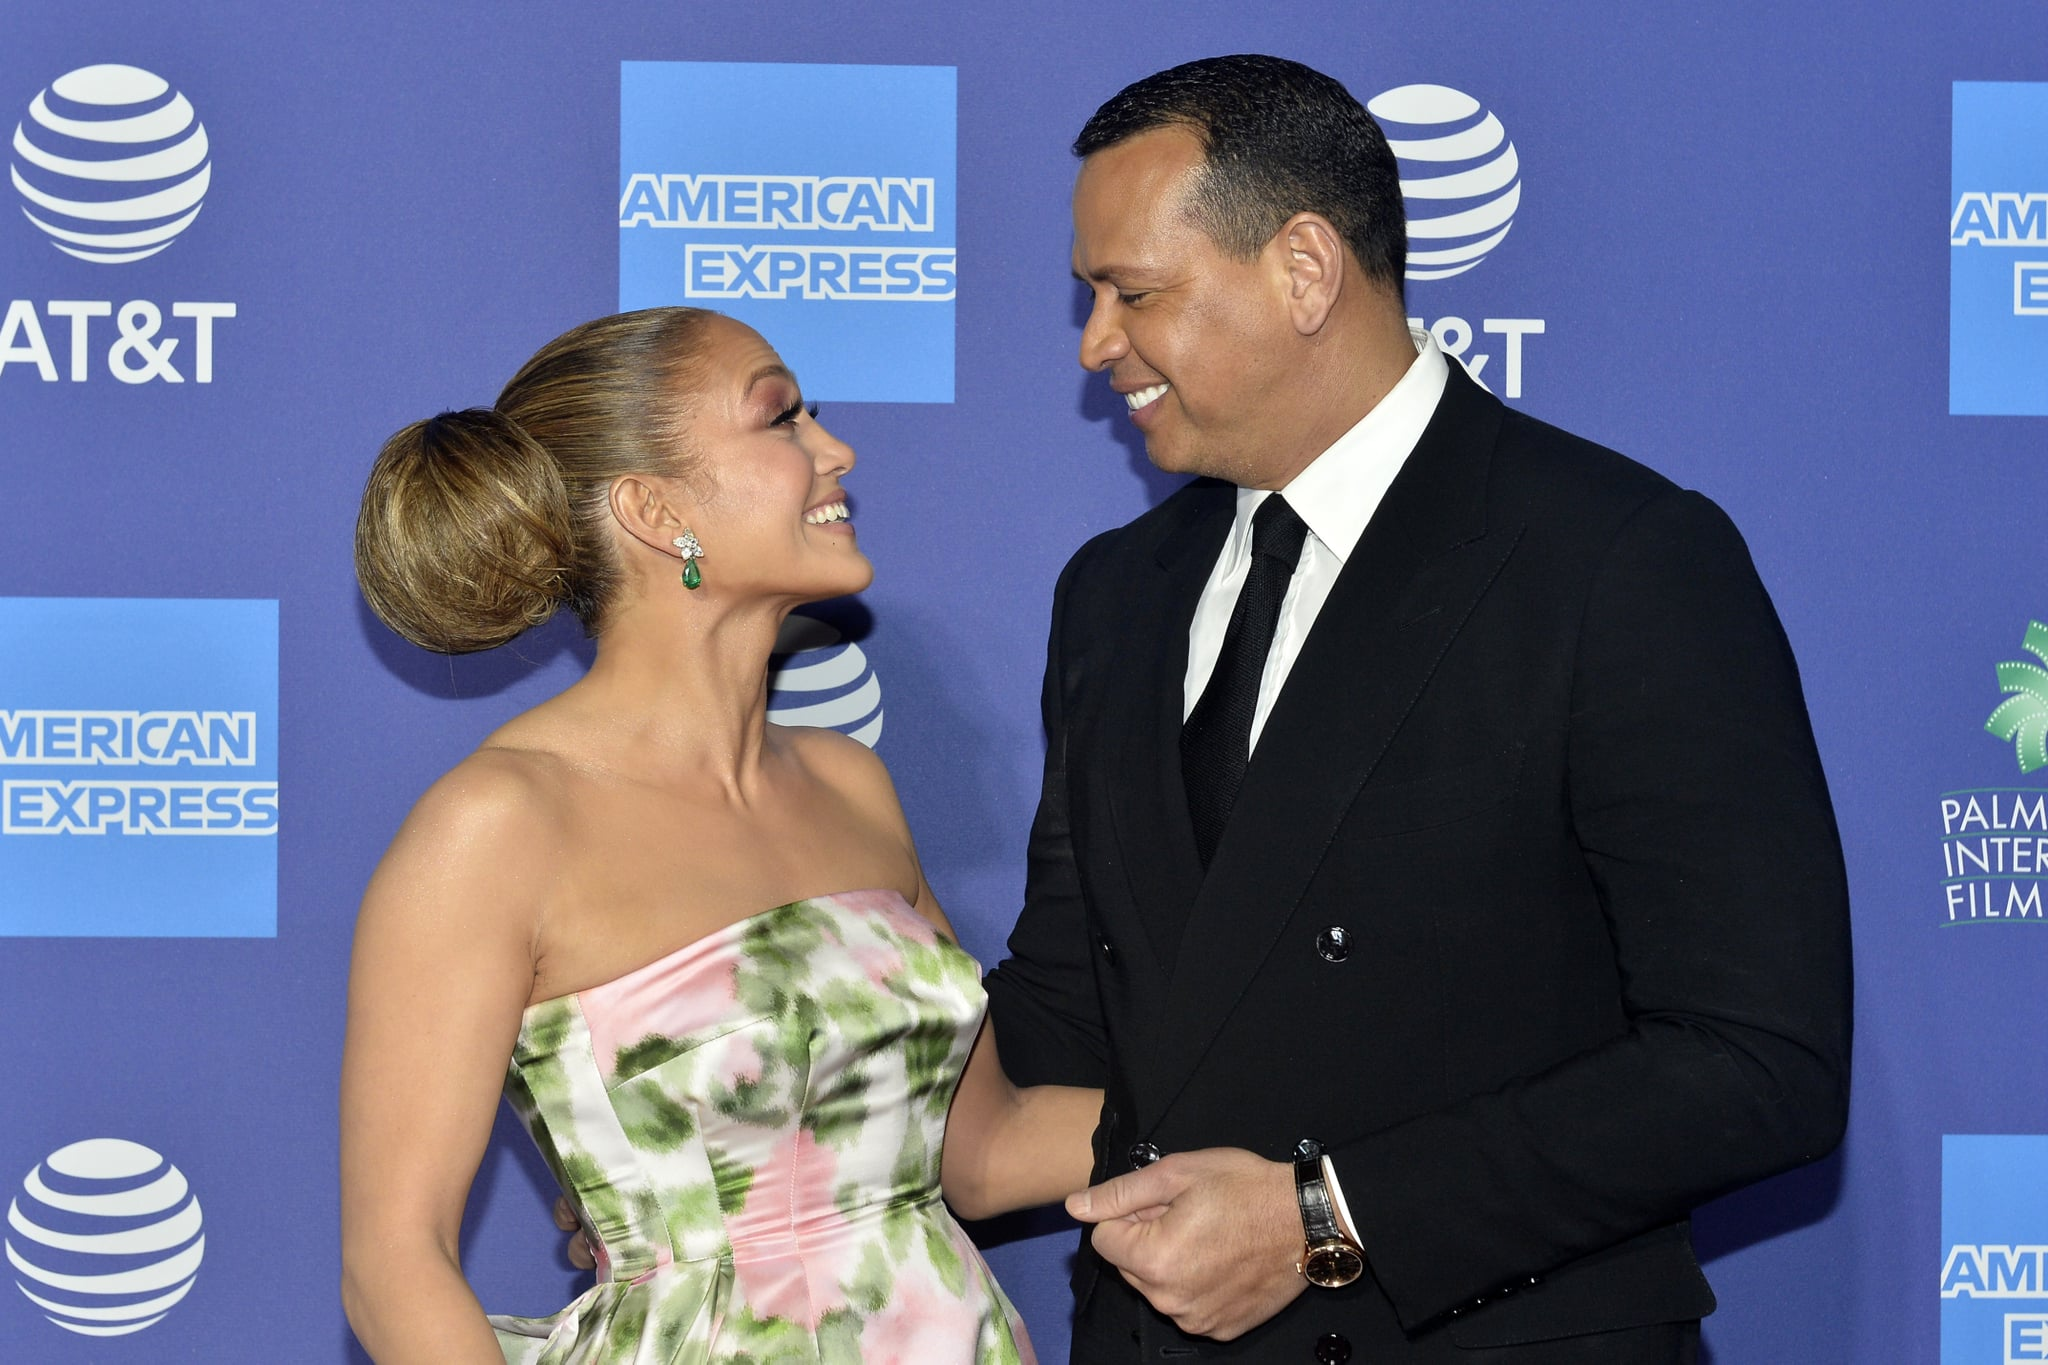 PALM SPRINGS, CALIFORNIA - JANUARY 02: Jennifer Lopez and Alex Rodriguez arrive at the 2020 Annual Palm Springs International Film Festival Film Awards Gala on January 02, 2020 in Palm Springs, California. (Photo by Jerod Harris/FilmMagic)